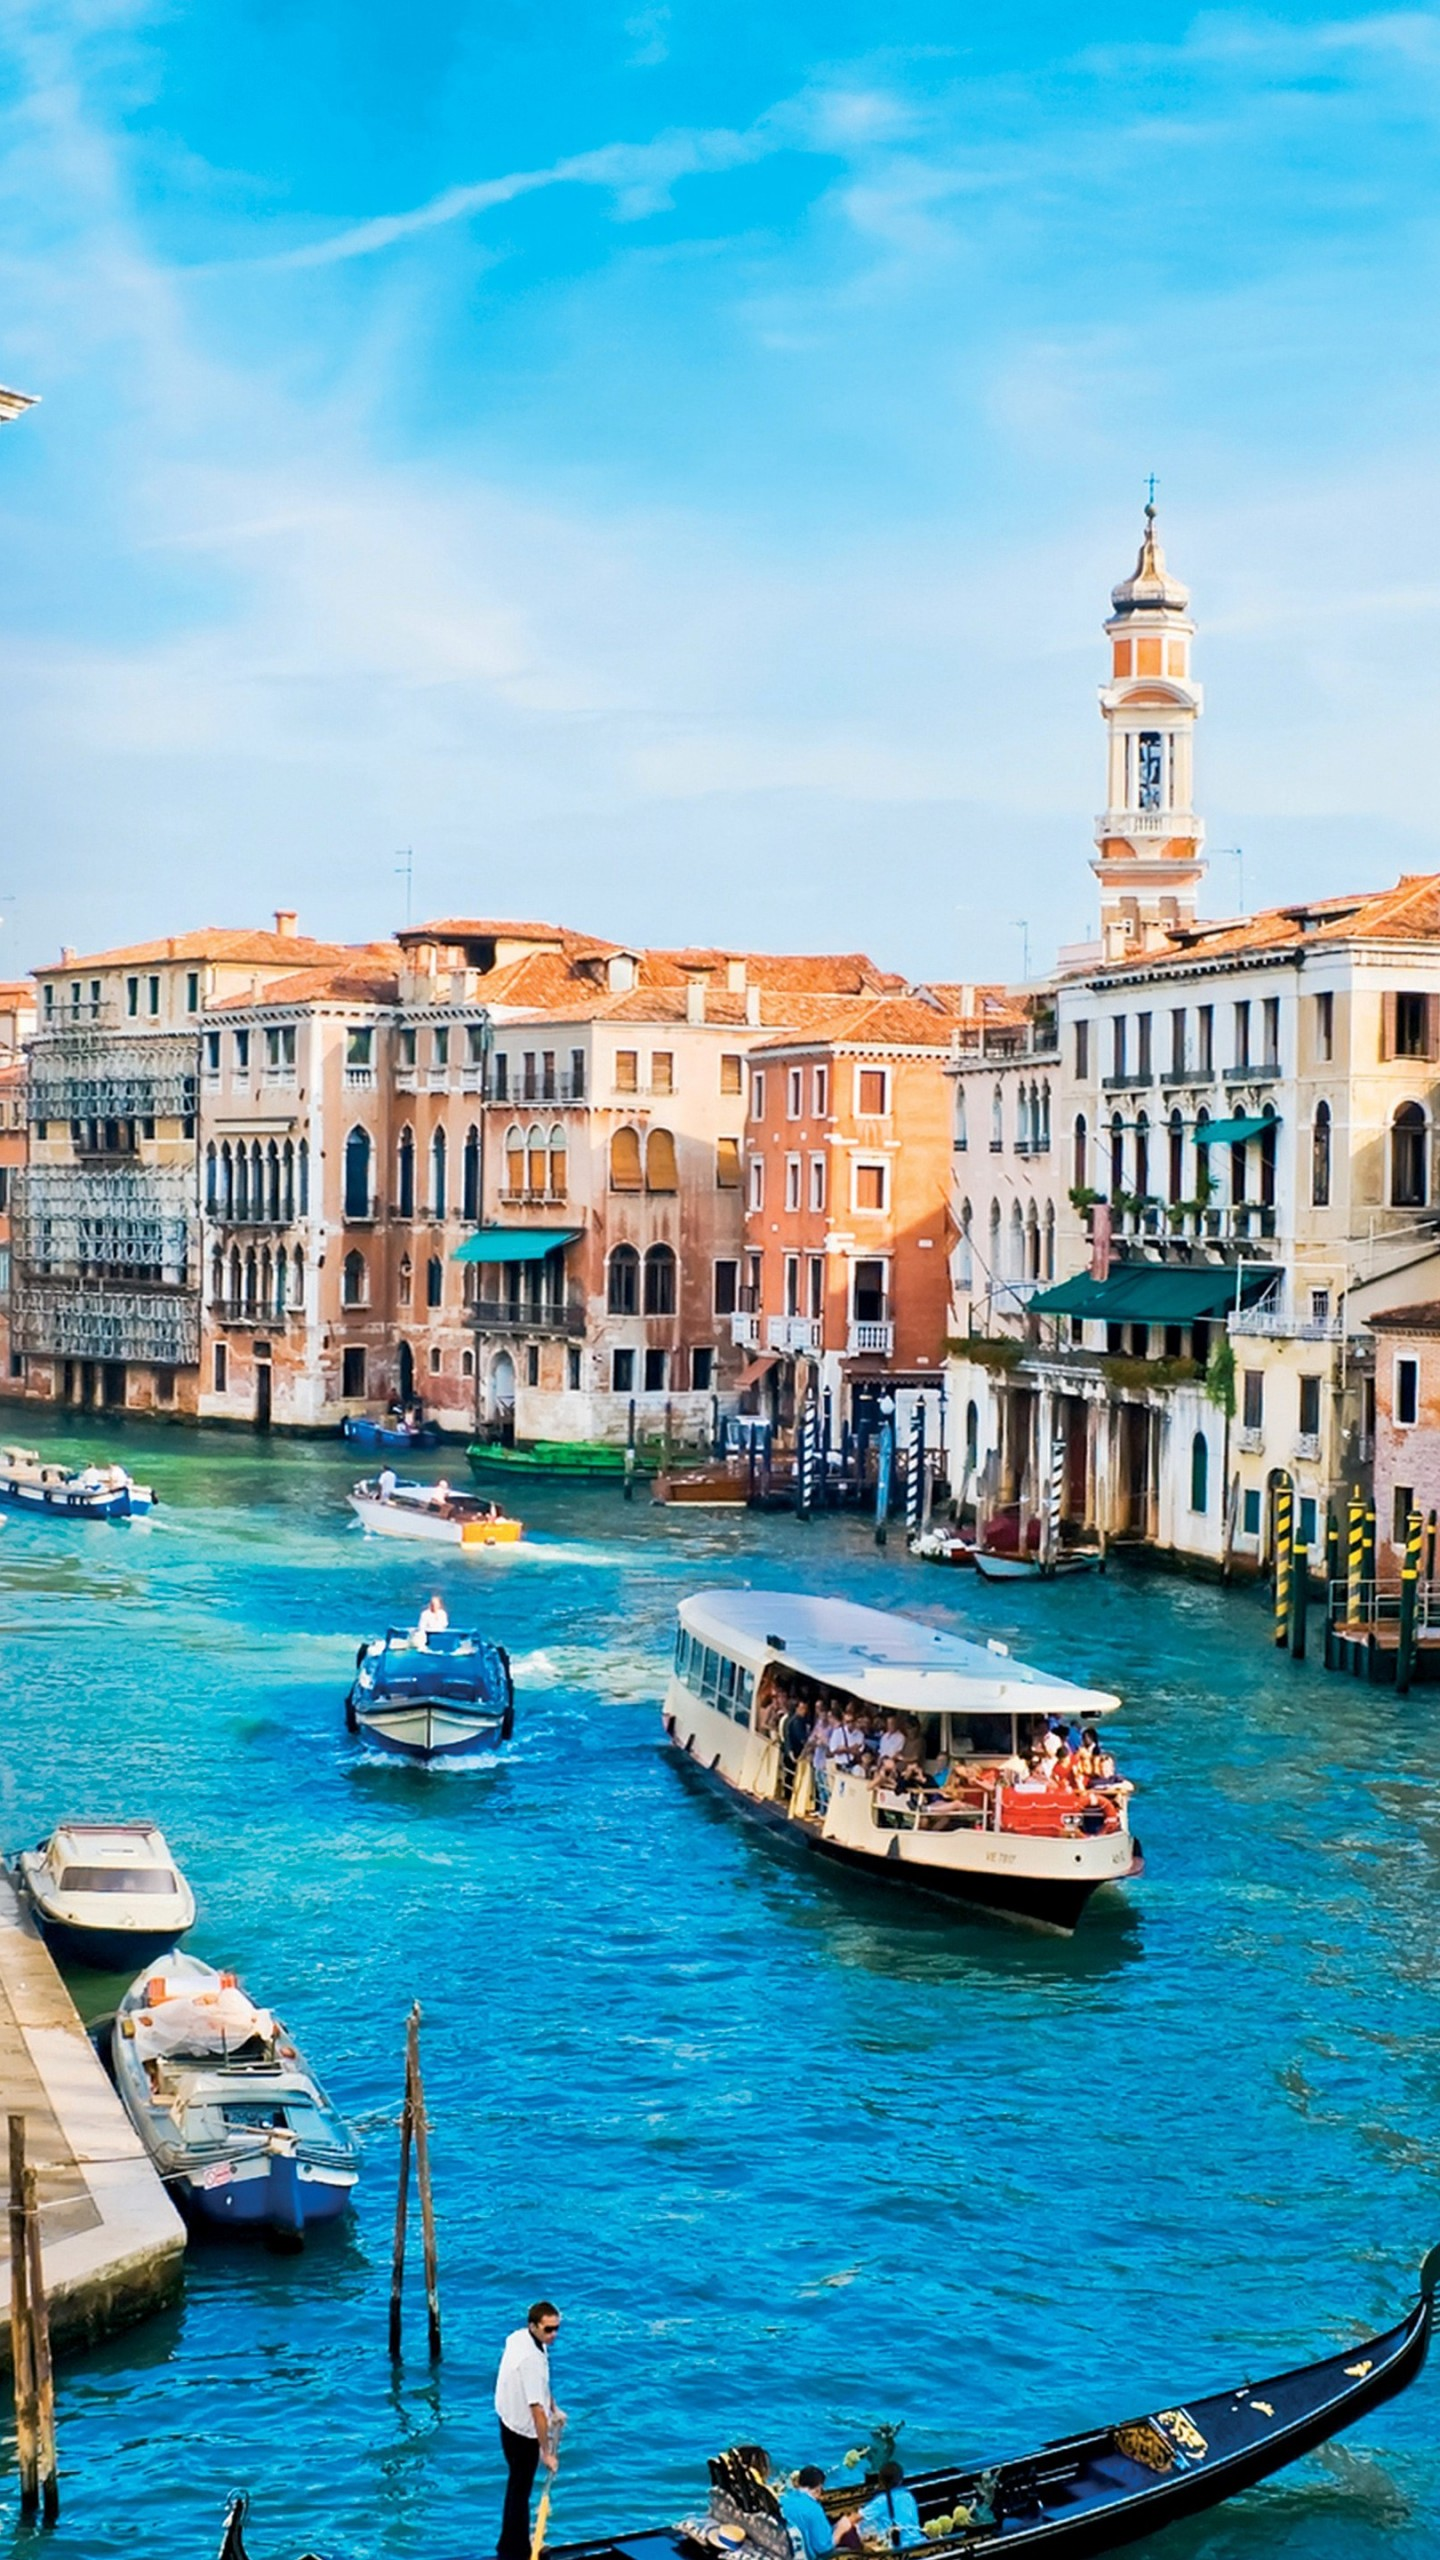 Wallpaper Grand Canal Venice Italy Europe Travel